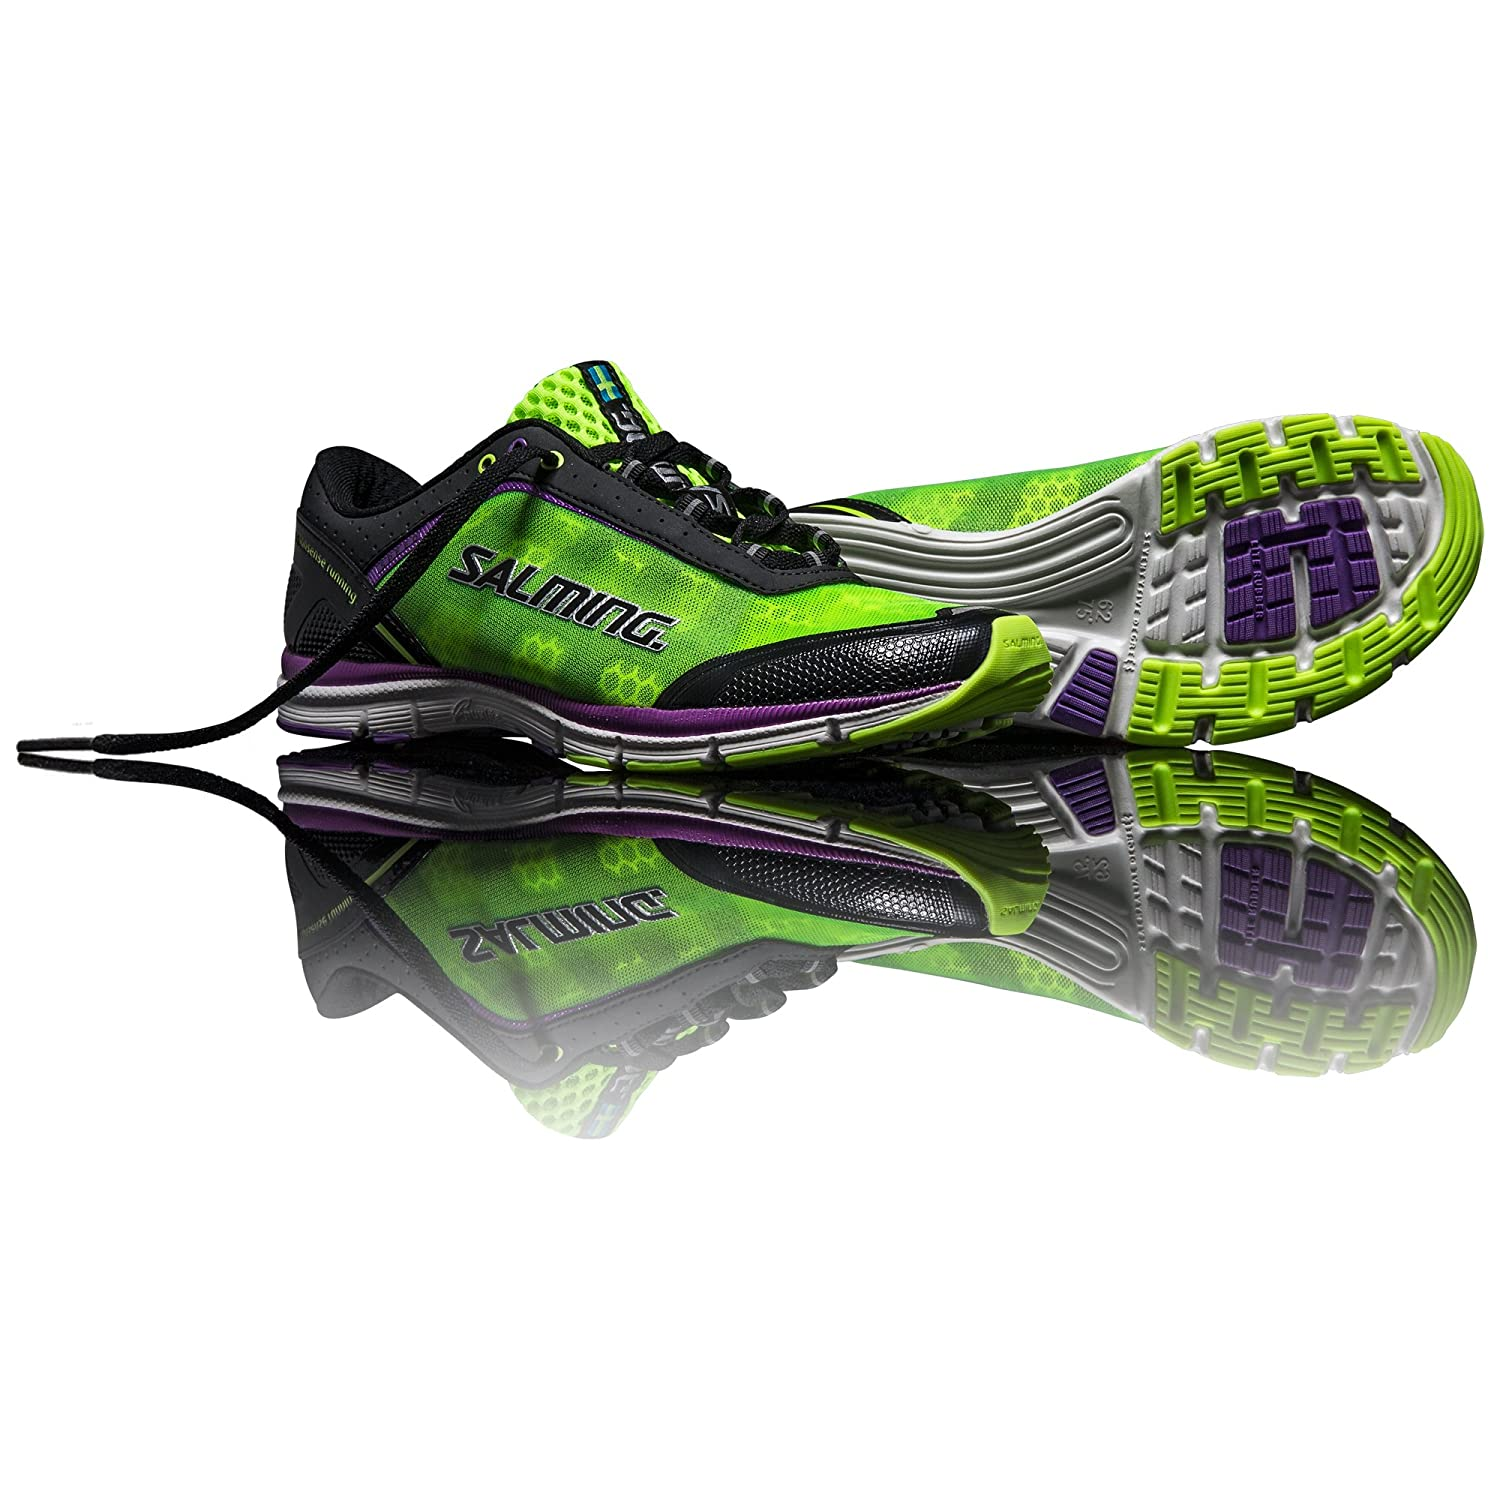 5948a1acc3d high-quality Salming Speed Ladies Running Shoes - appleshack.com.au